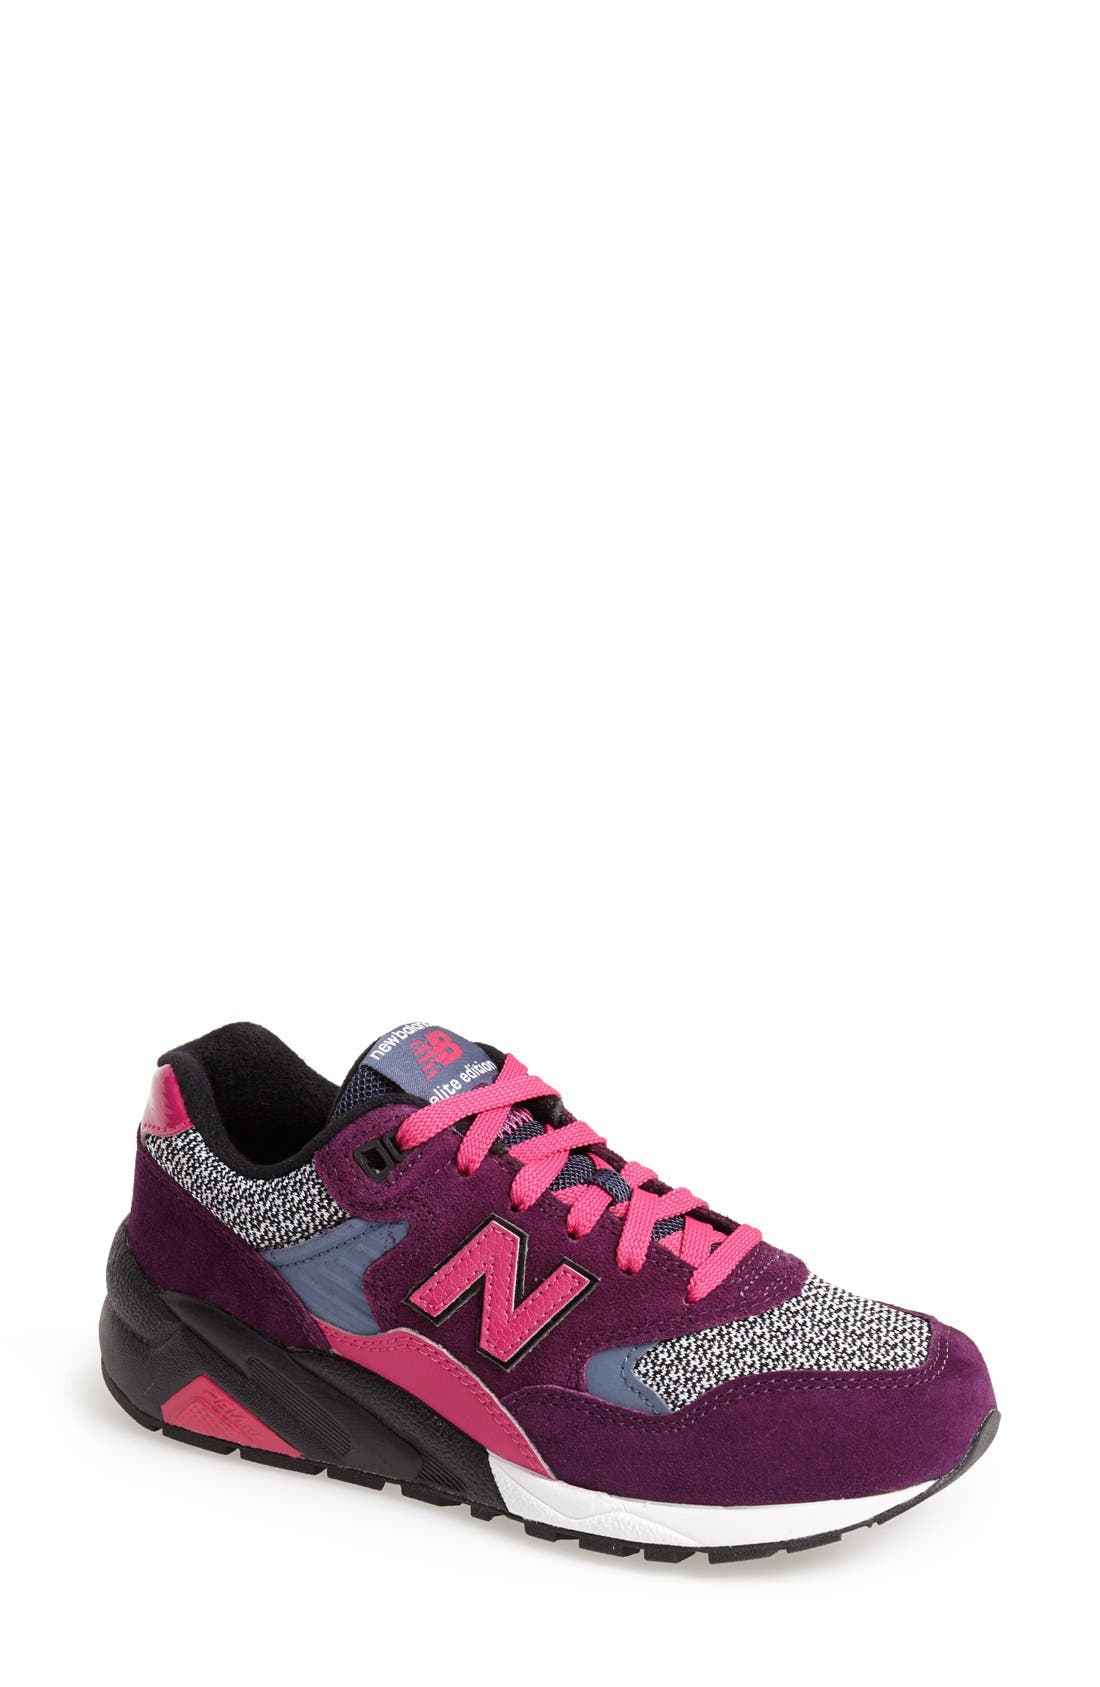 Alternate Image 1 Selected - New Balance '580' Sneaker (Women)